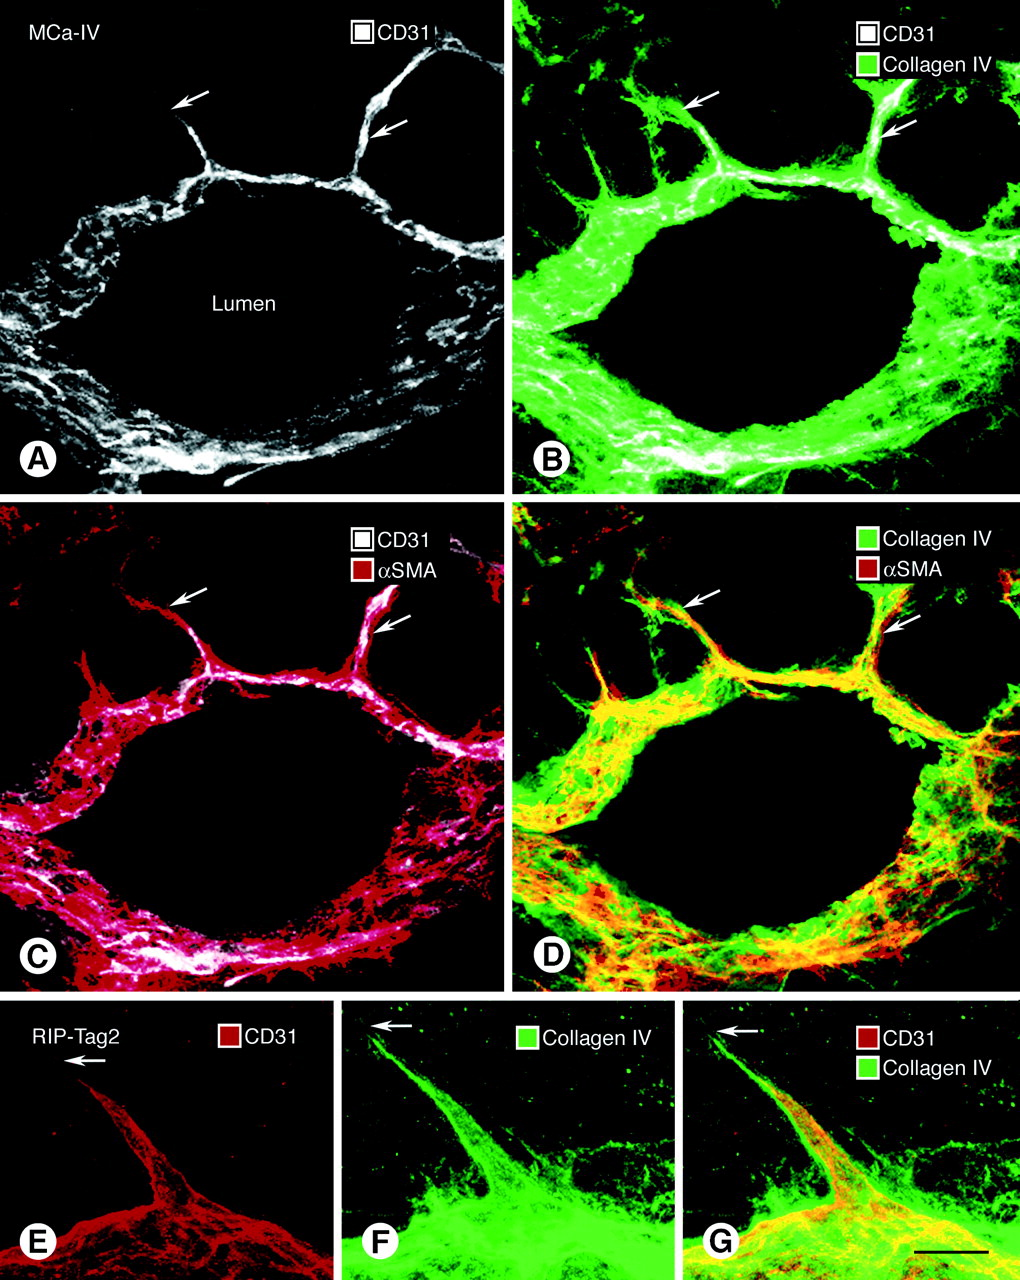 Abnormalities Of Basement Membrane On Blood Vessels And Endothelial Sprouts In Tumors